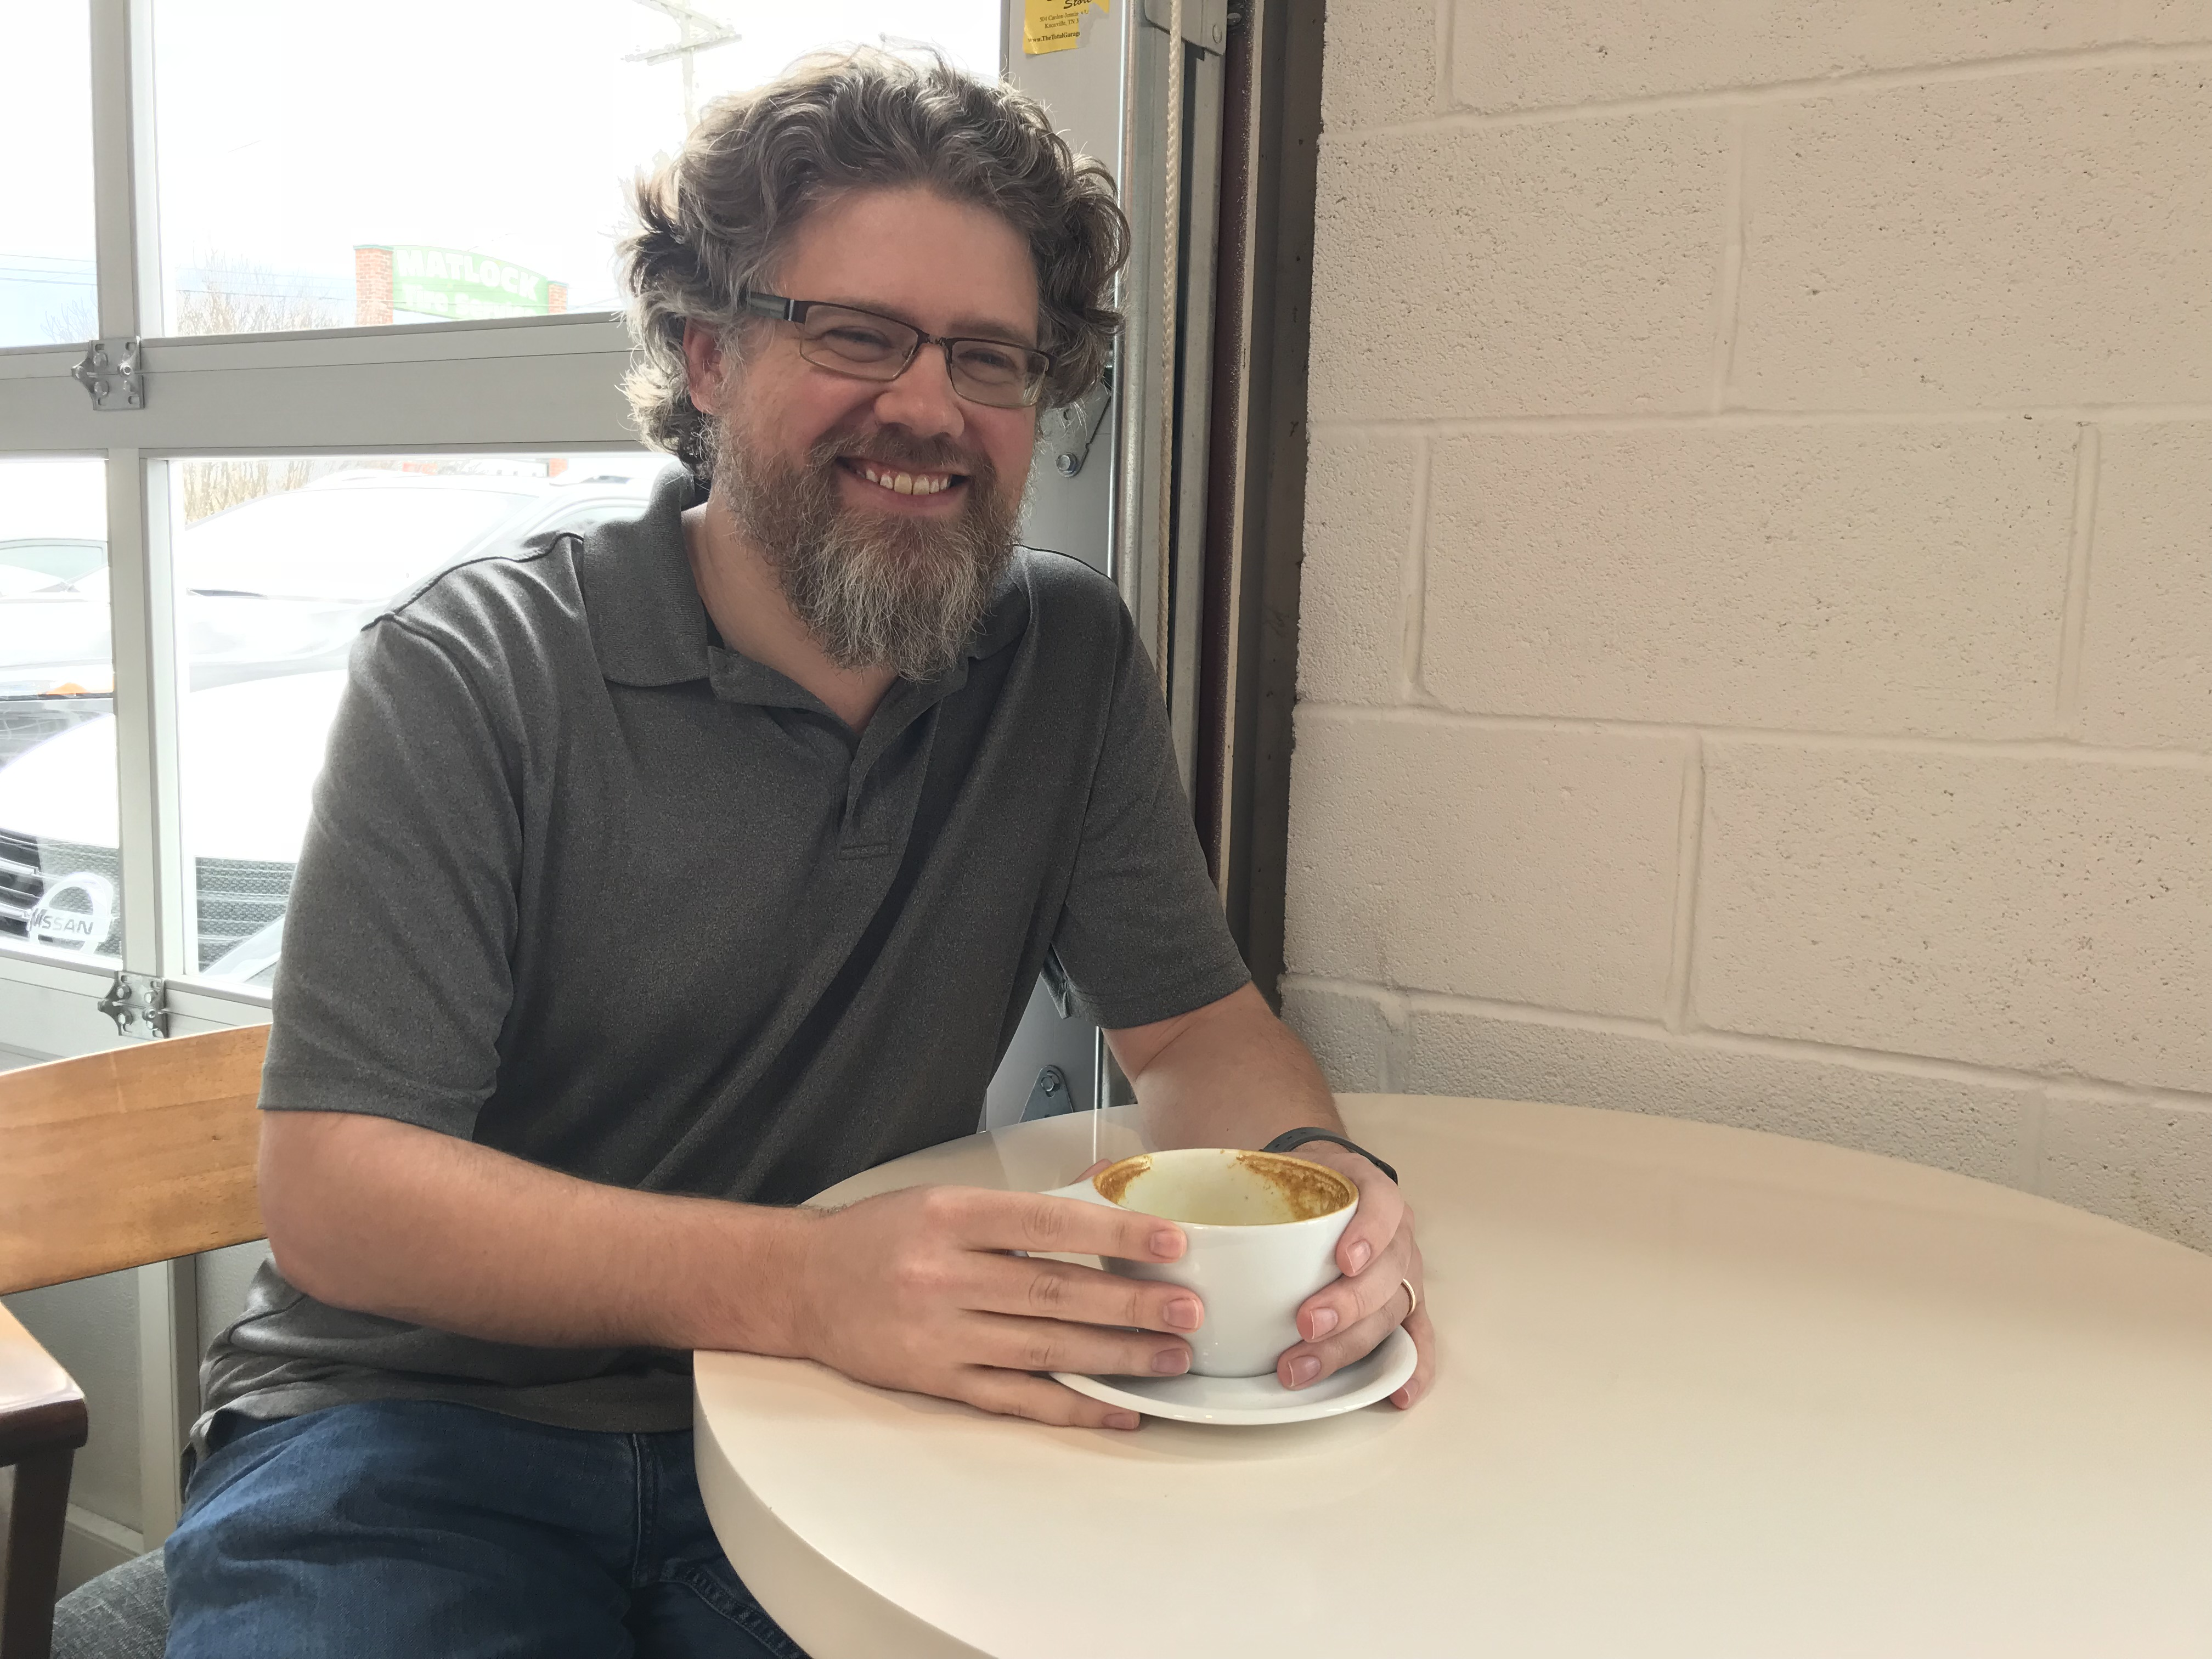 Since recovering from a stroke, Paul DeWitt appreciates simple pleasures that are easily taken for granted. He grasps a cup of coffee. He smiles and laughs. He even appreciates the ability to whistle.